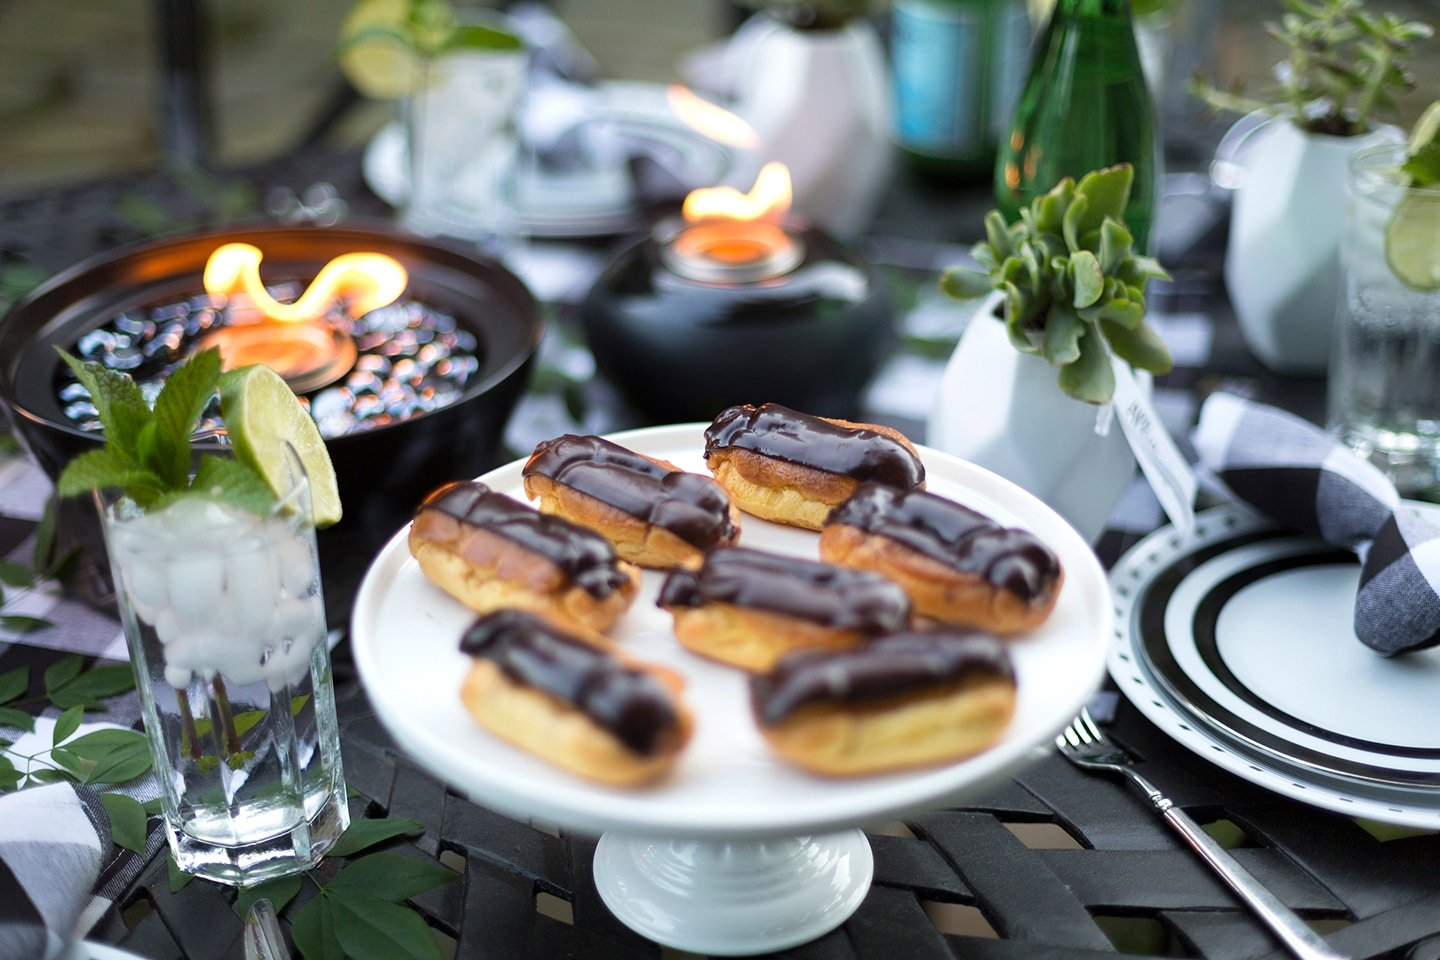 Black and White Backyard Dinner Party with Campfire S'more Eclairs for dessert!